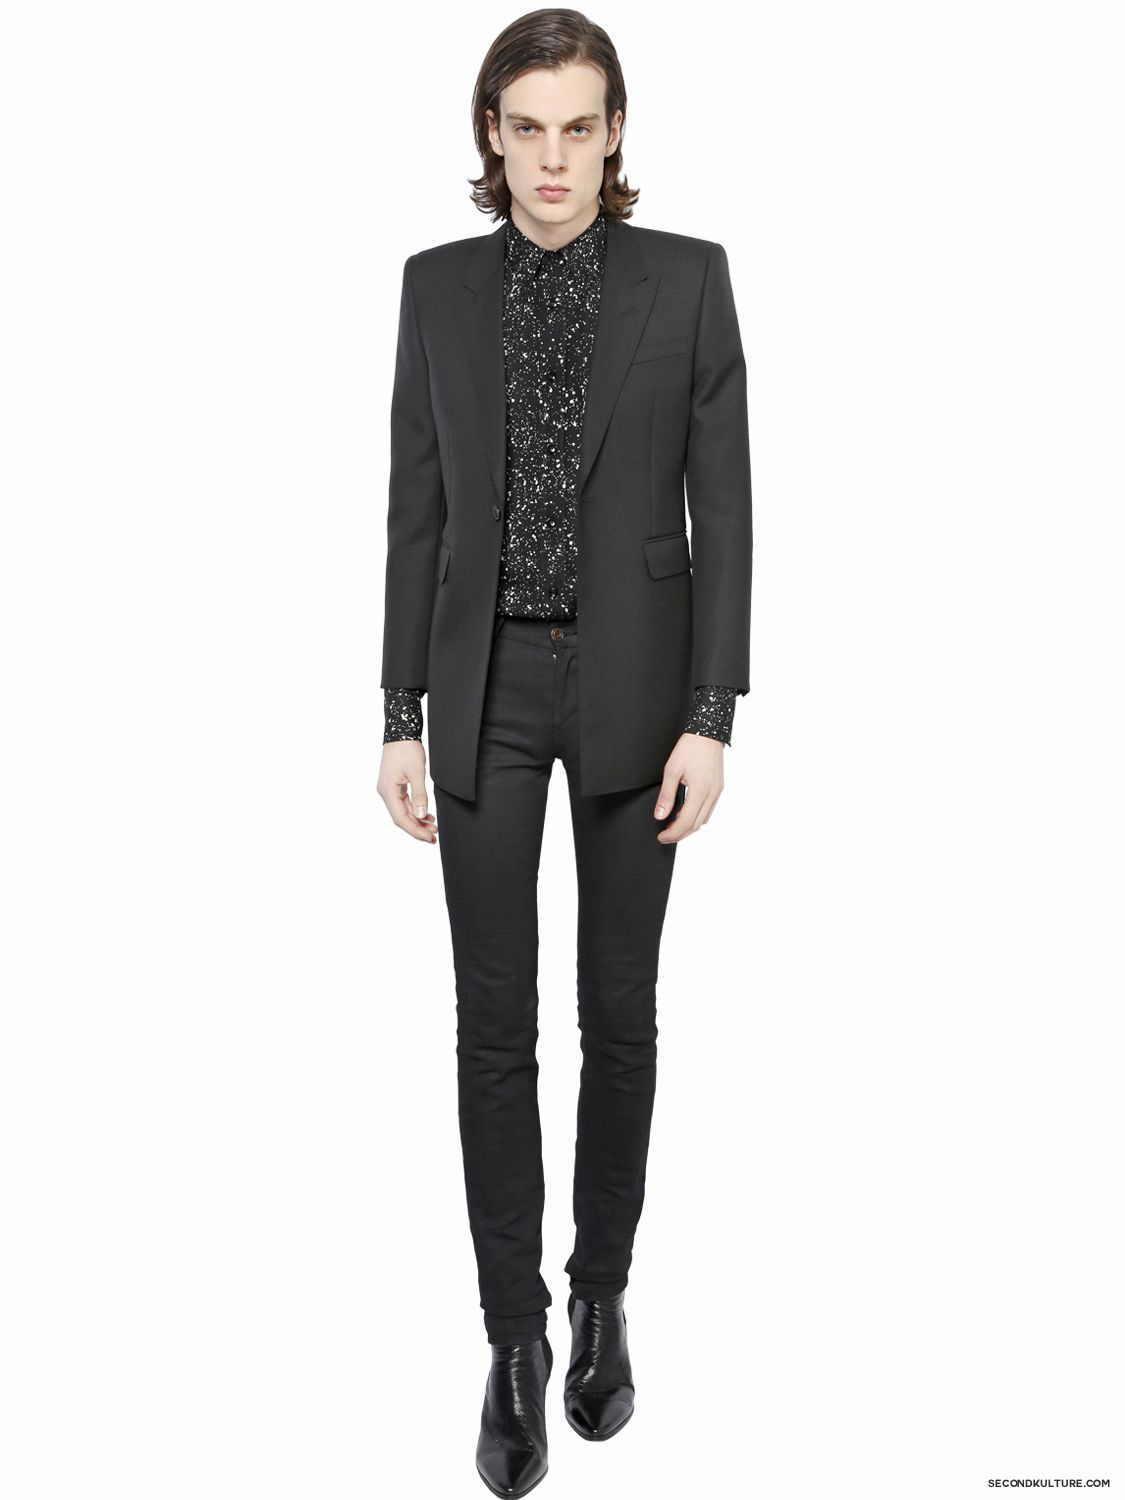 Saint-Laurent-Black-Micro-Confetti-Print-Light-Viscose-Twill-Shirt-Fall-Winter-2015-2